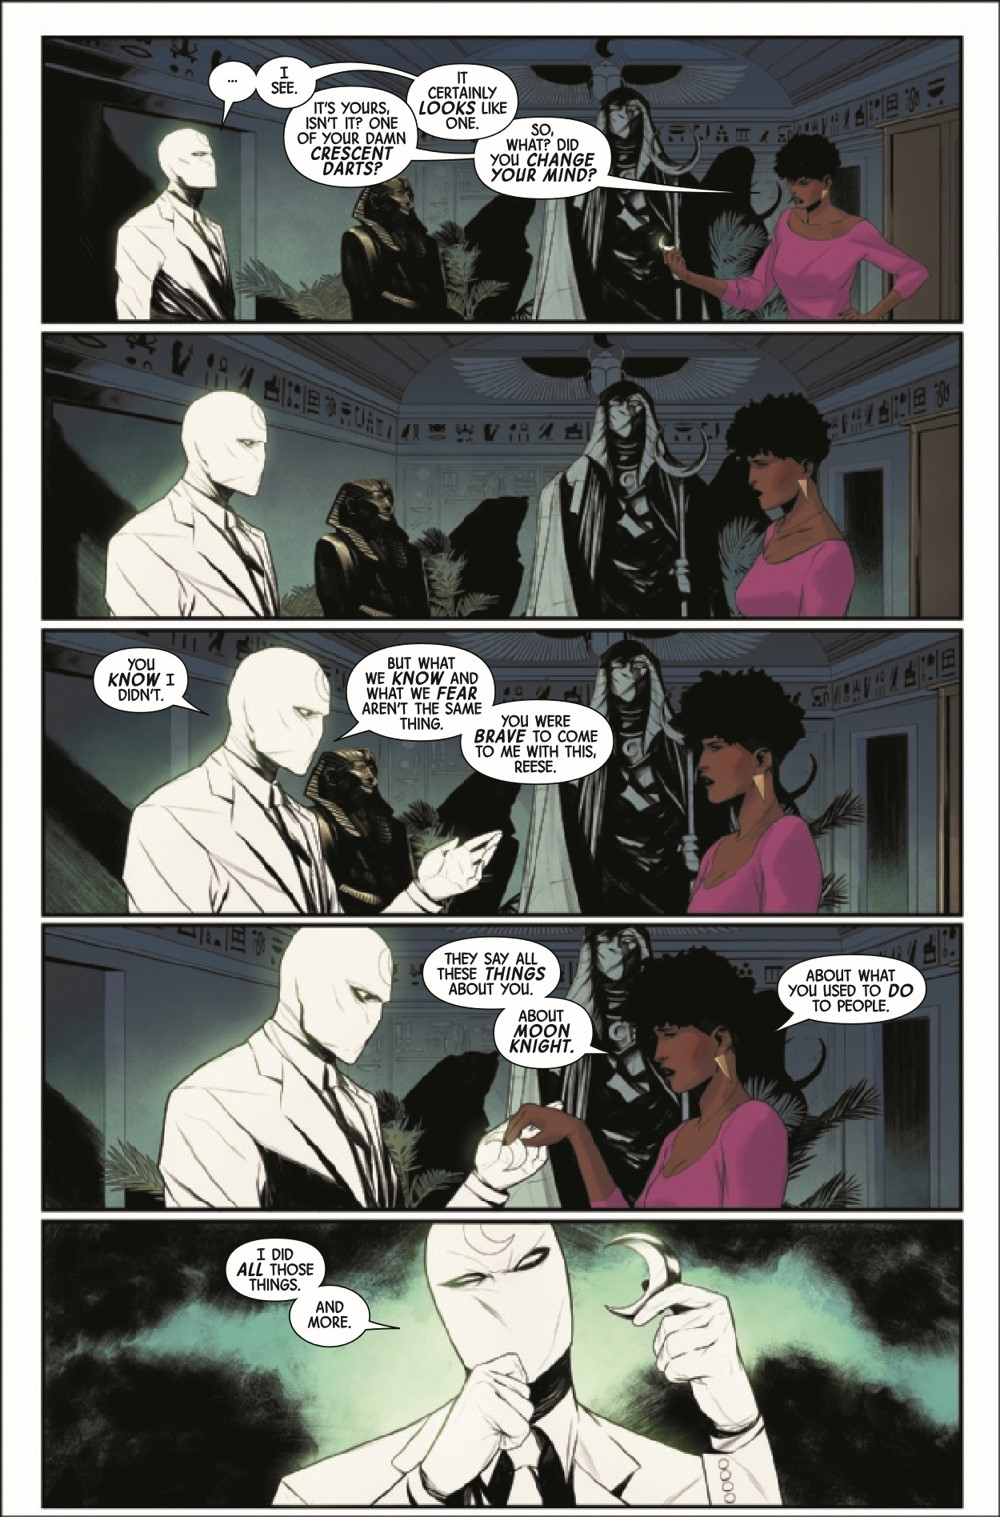 MOONKN2021003_Preview-6 ComicList Previews: MOON KNIGHT #3